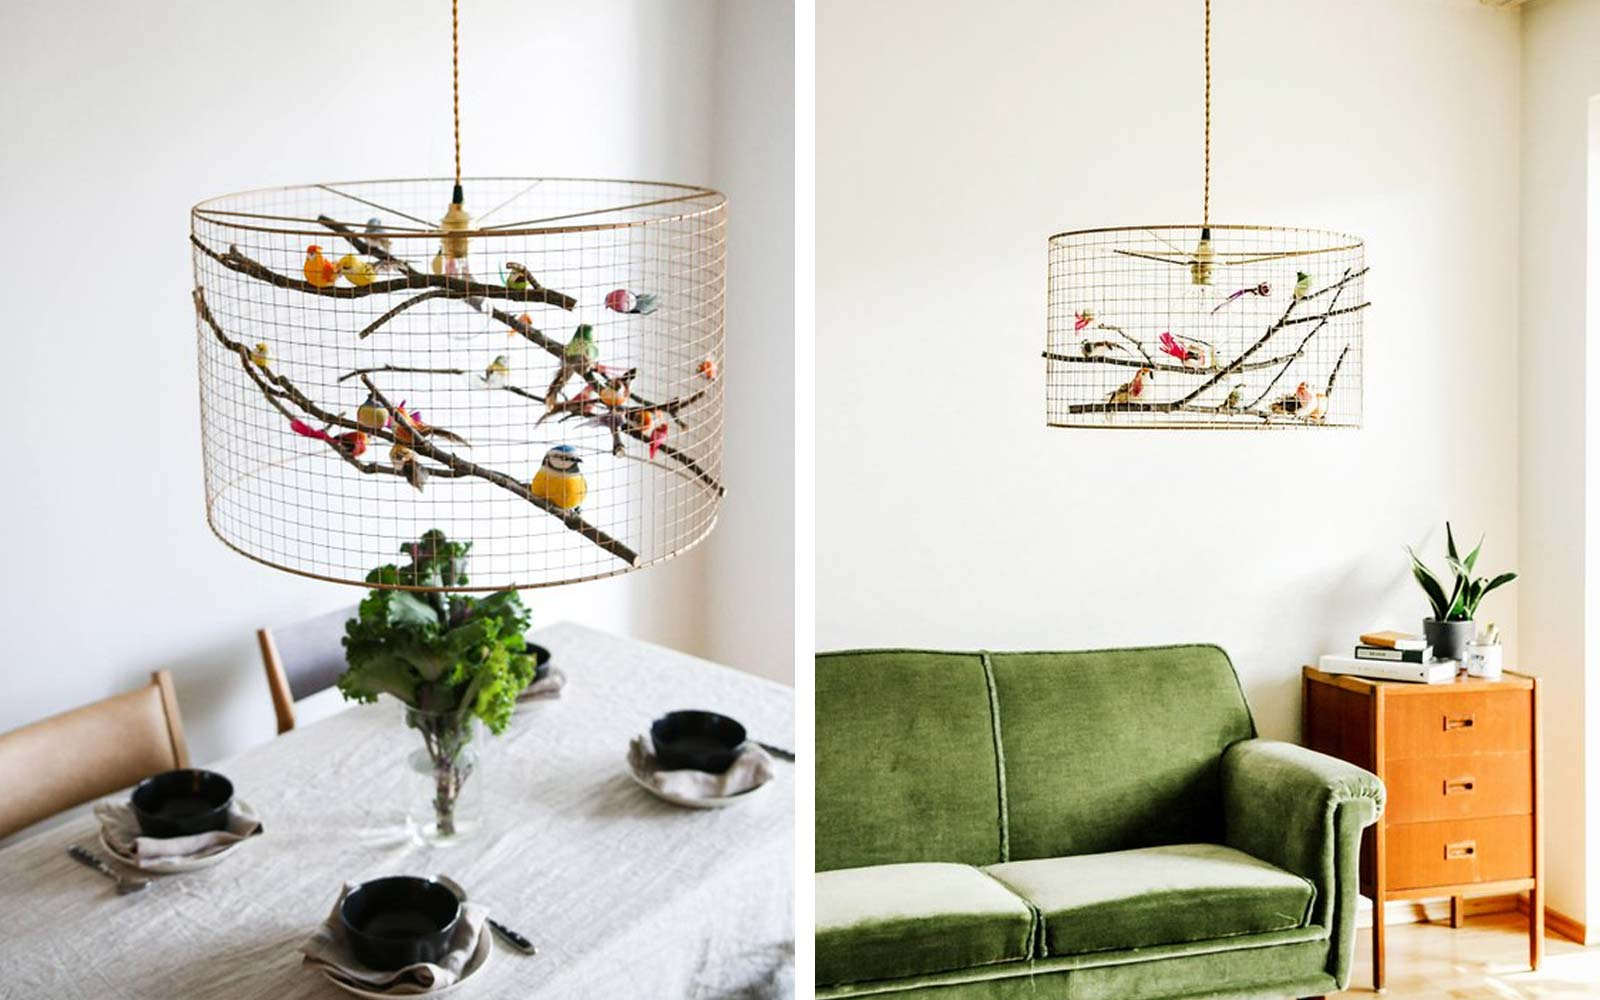 Birdcage Pendant Light Chandelier